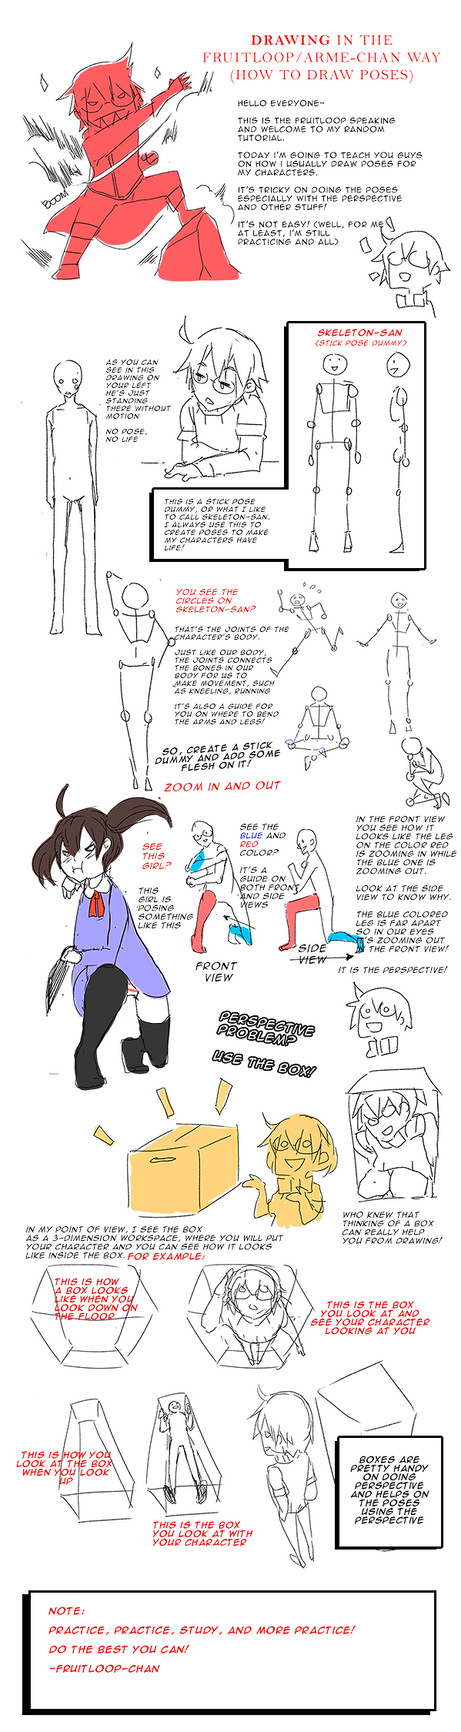 Creating Poses in the Fruitloop way by Fruitloop-chan